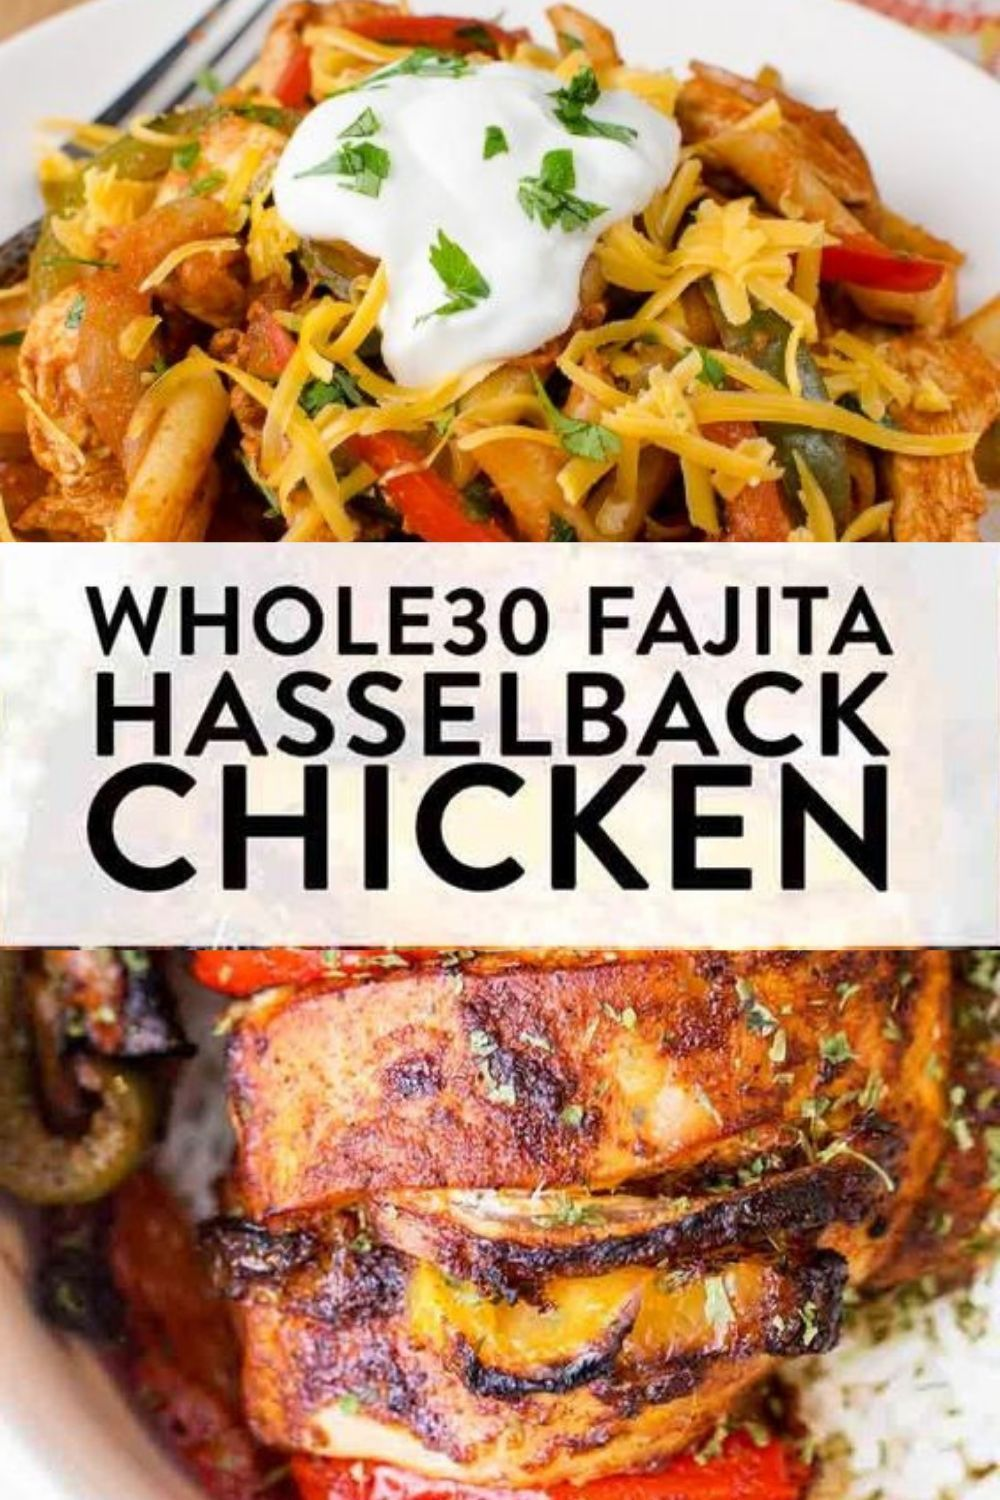 30 fajita hasselback chicken #hasselbackchicken This easy whole30 recipe for fajita hasselback chicken is a clean eating must do! A healthy, high protein,  low carb alternative to a dinner favorite is always good in my books. A twist on fajitas with the simplicity of sheet pan chicken. #hasselbackchicken 30 fajita hasselback chicken #hasselbackchicken This easy whole30 recipe for fajita hasselback chicken is a clean eating must do! A healthy, high protein,  low carb alternative to a dinner favor #hasselbackchicken